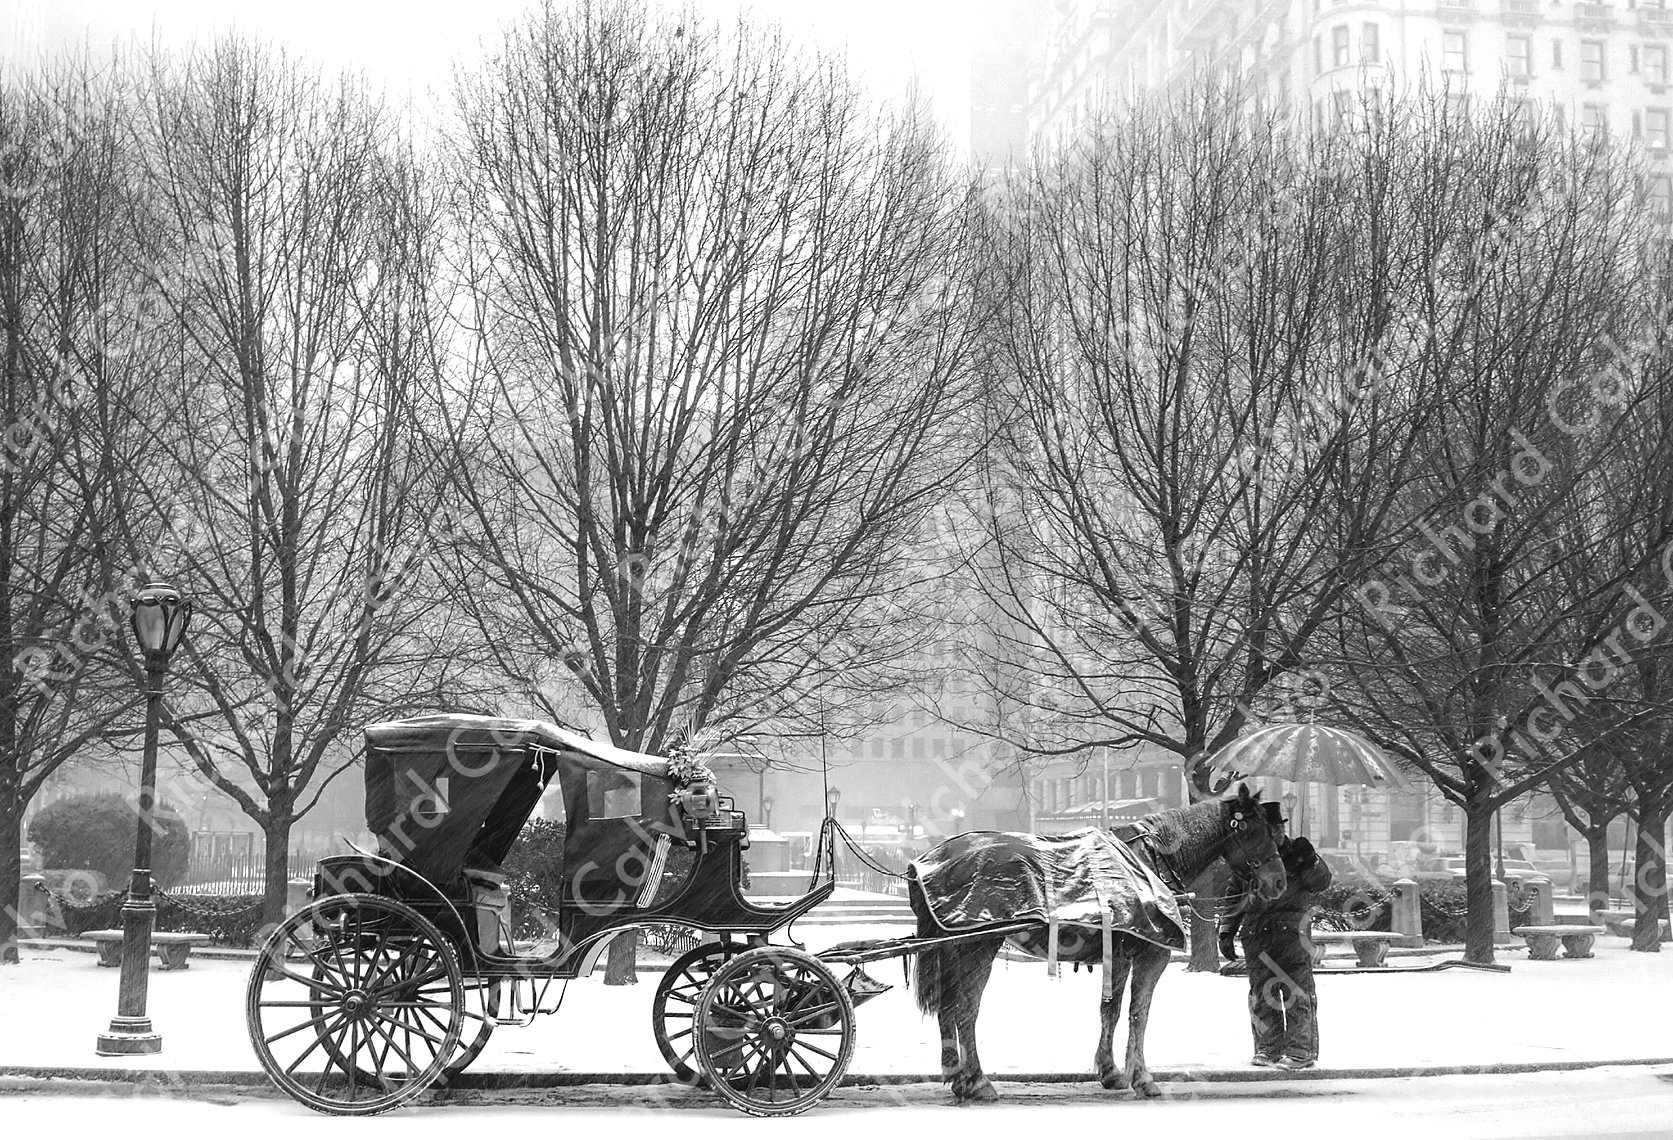 """Central Park Coach"" Richard Calvo Photography"